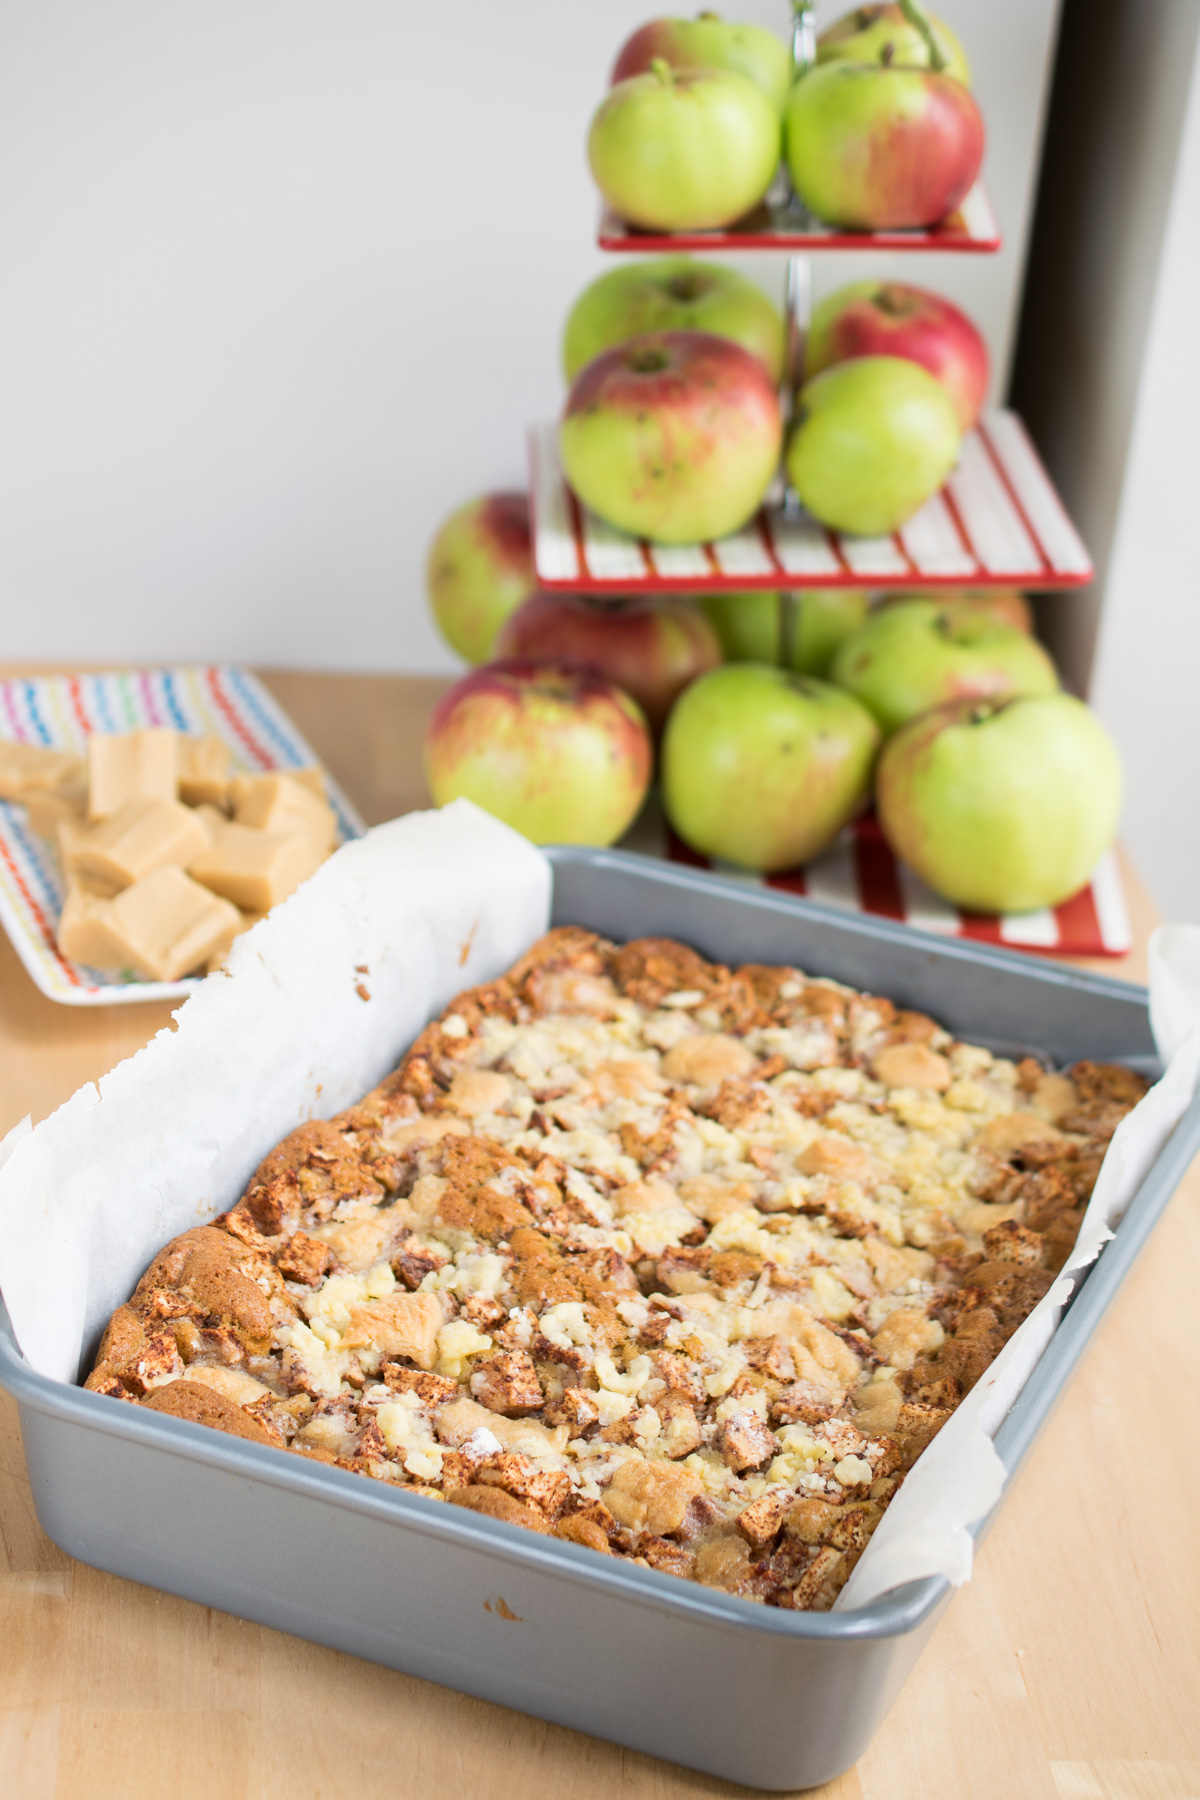 Apple Fudge Crumble Traybake